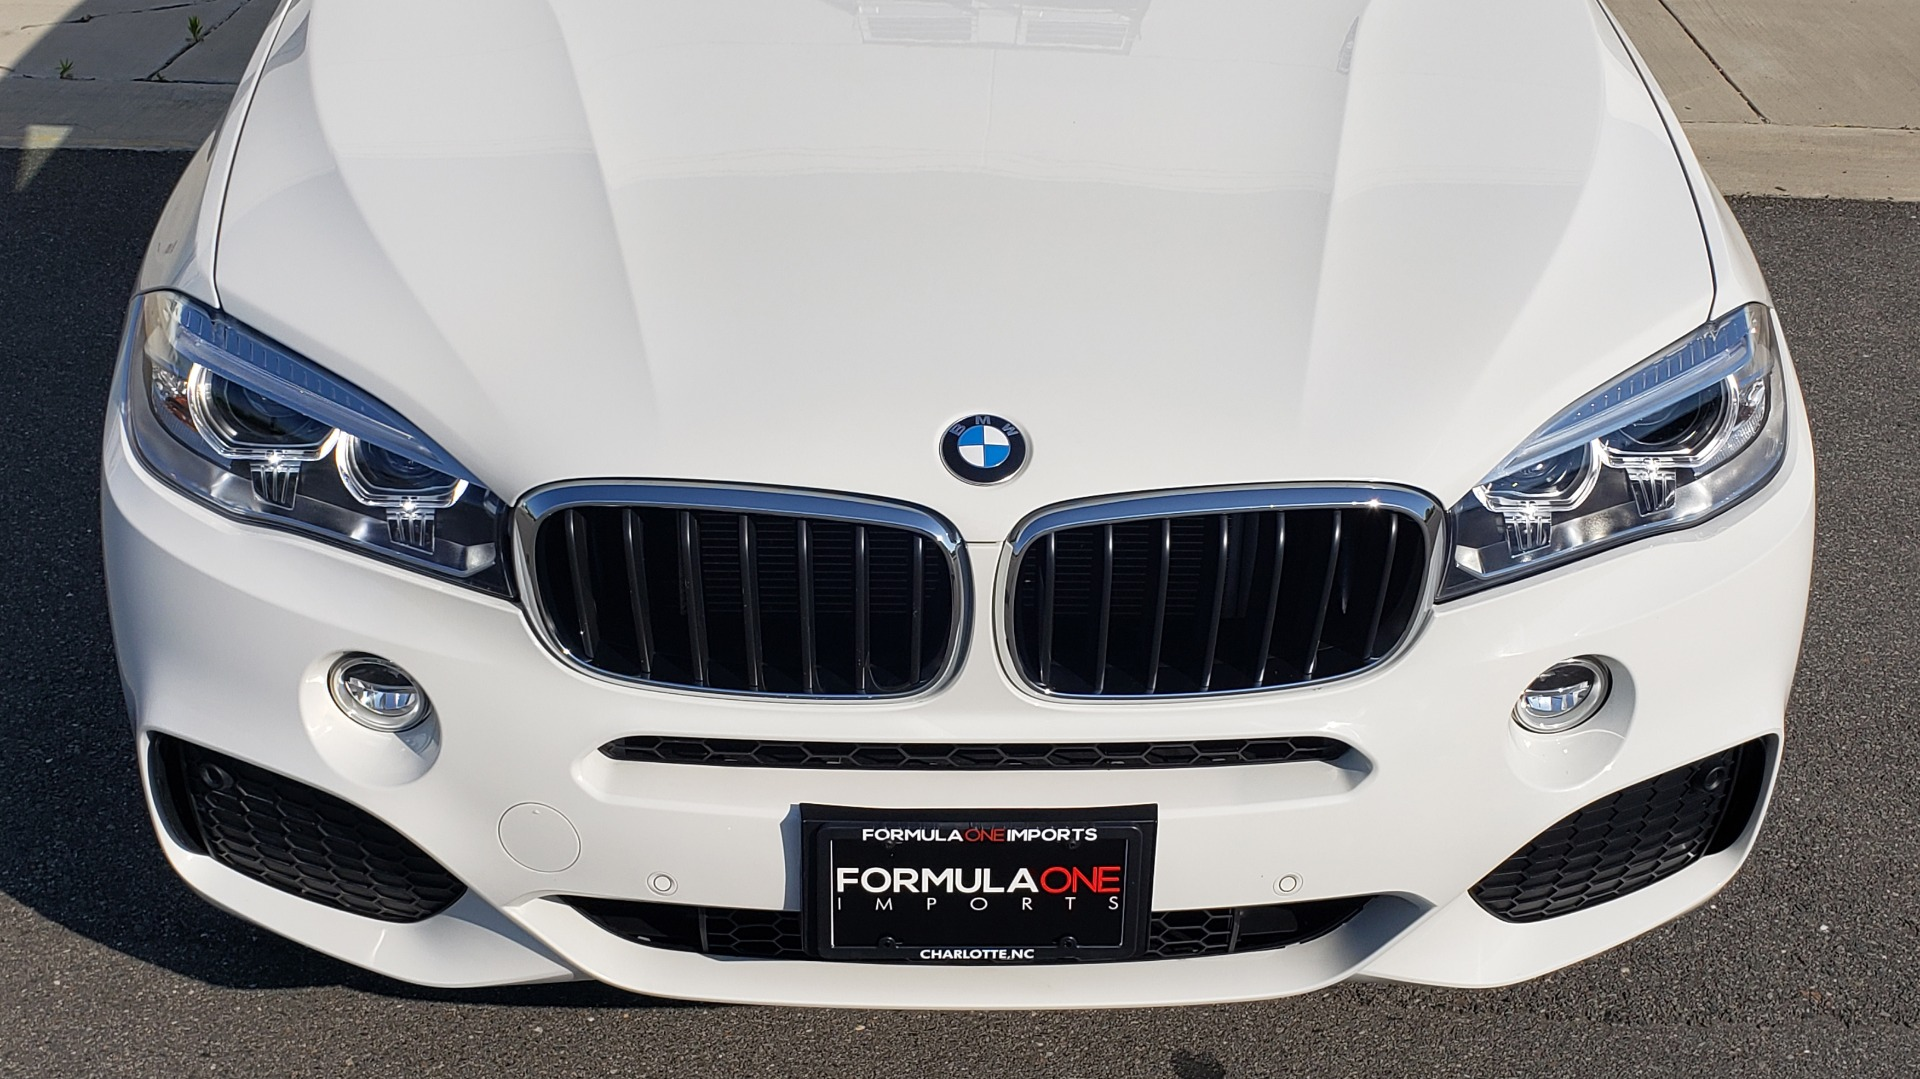 Used 2018 BMW X5 XDRIVE35I / M-SPORT / NAV / SUNROOF / H/K SND / REARVIEW for sale Sold at Formula Imports in Charlotte NC 28227 22